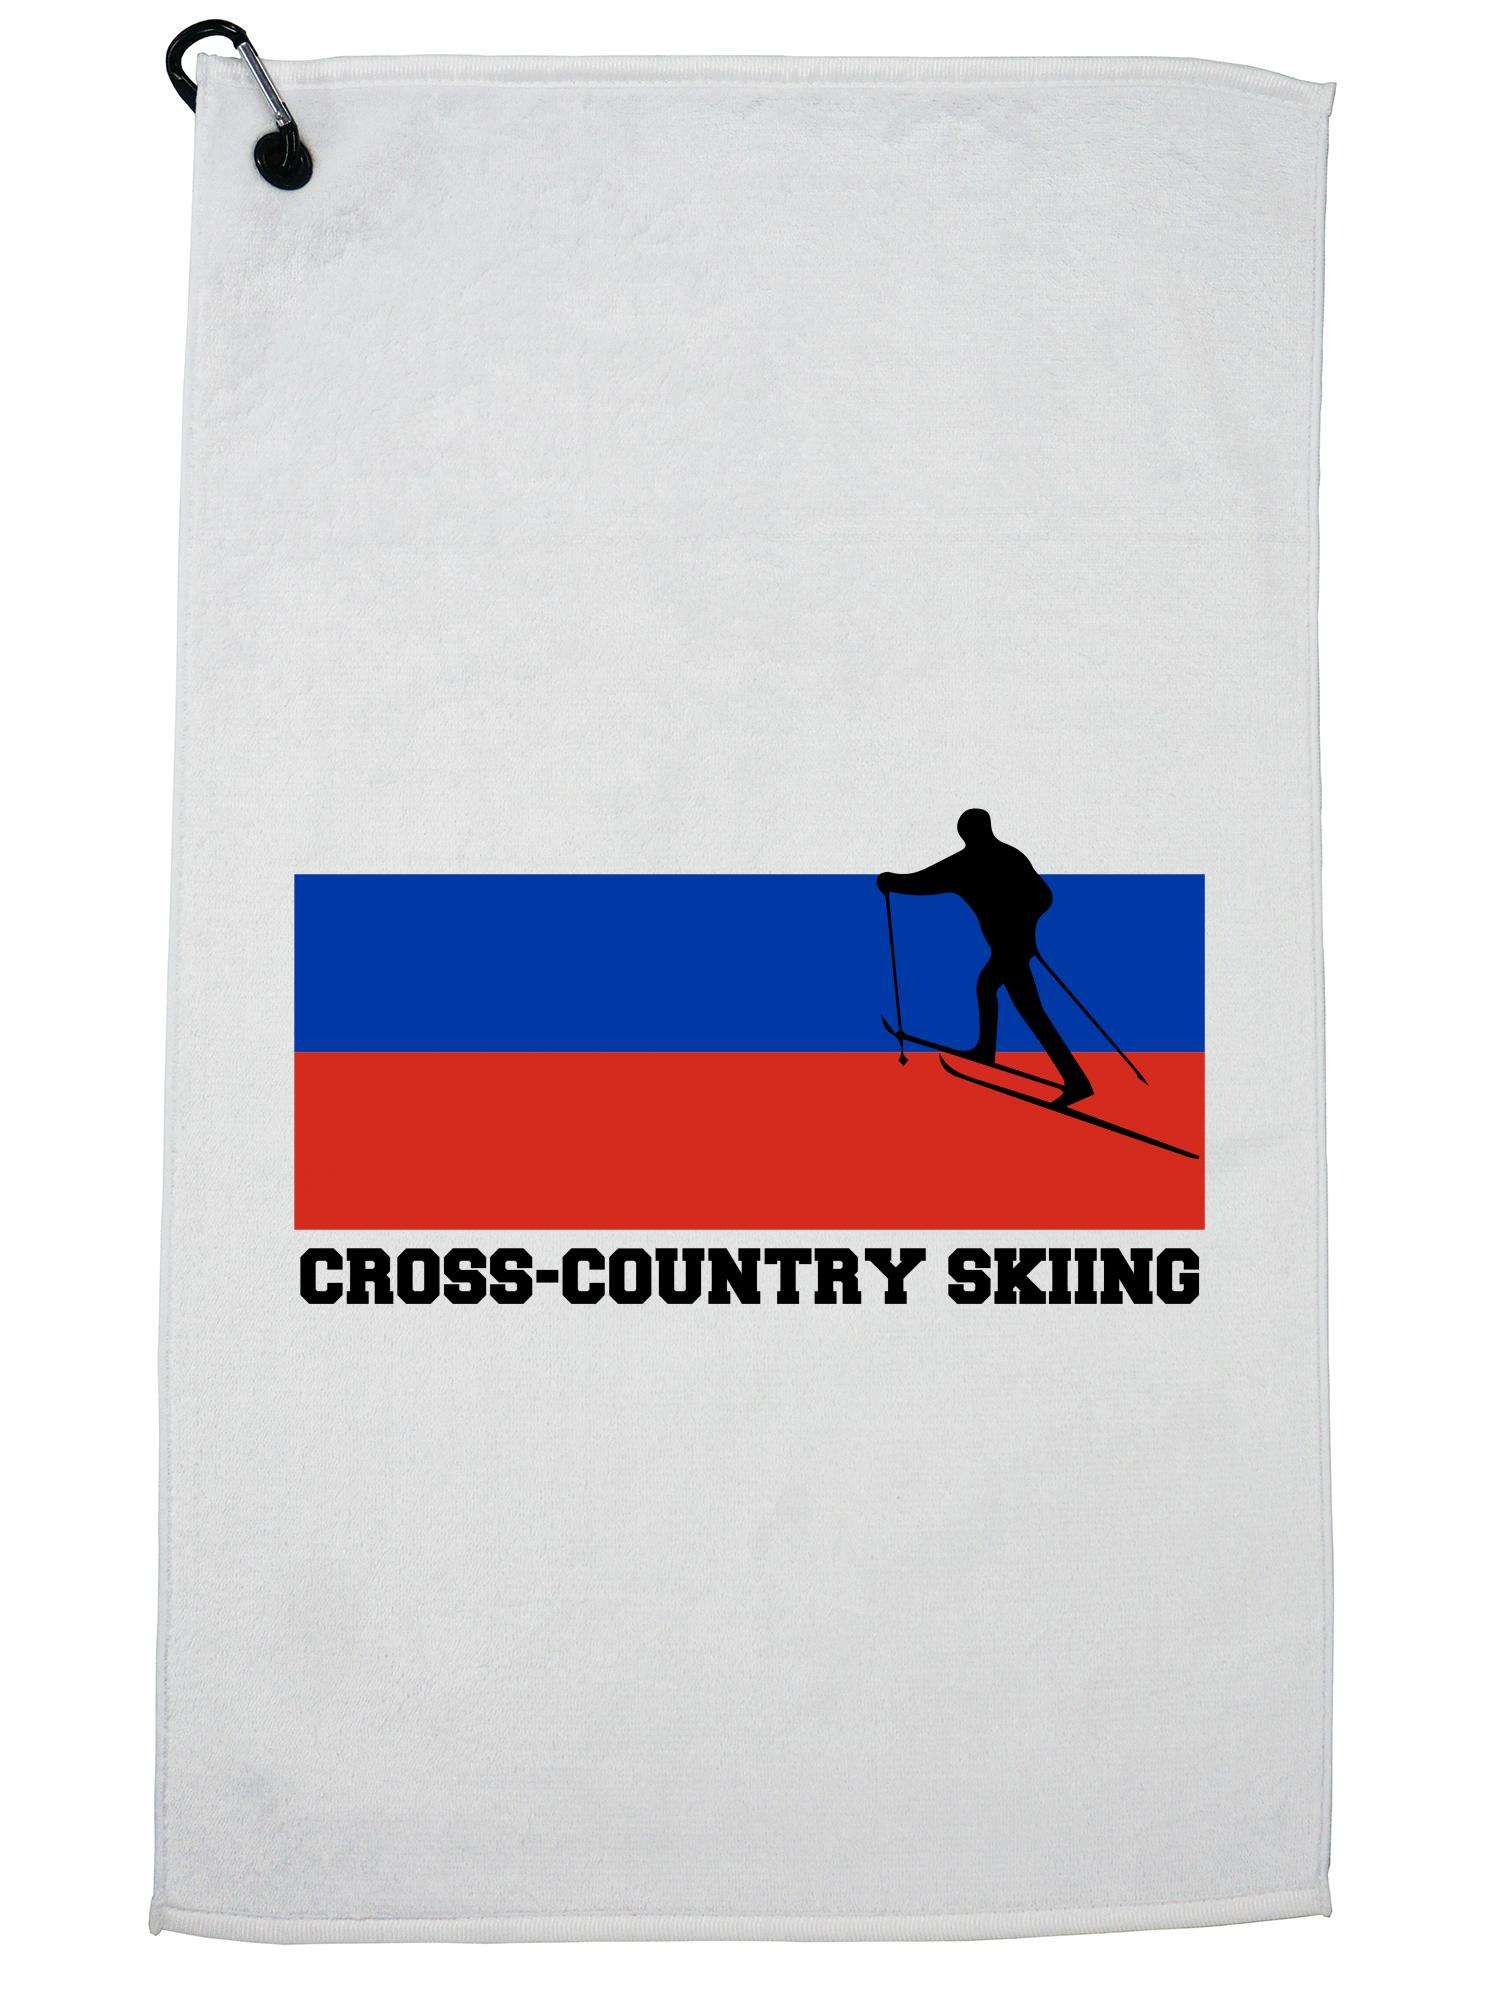 Russia Olympic Cross-Country Skiing Flag Silhouette Golf Towel with Carabiner Clip by Hollywood Thread